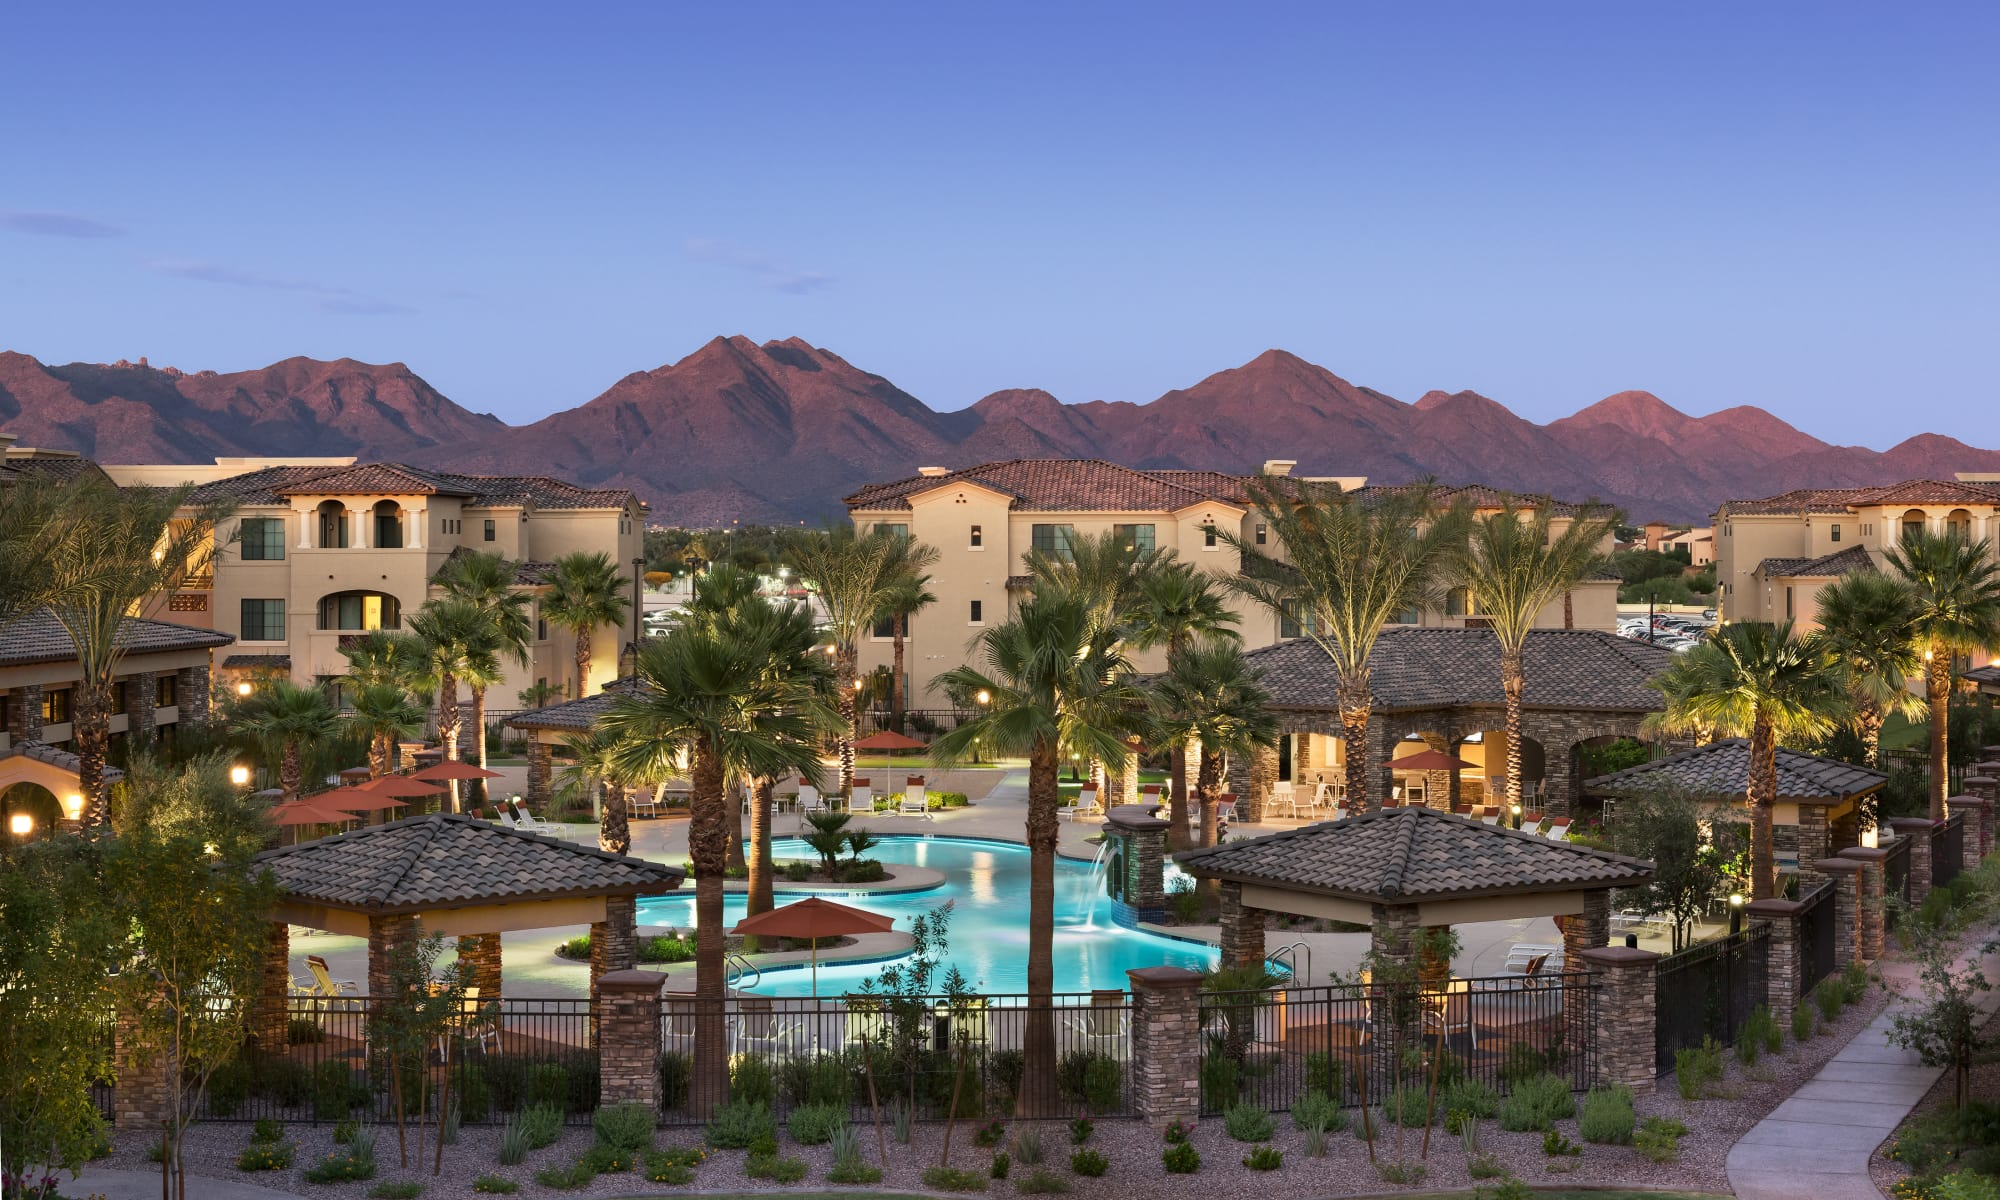 Apartments at San Milan in Phoenix, Arizona